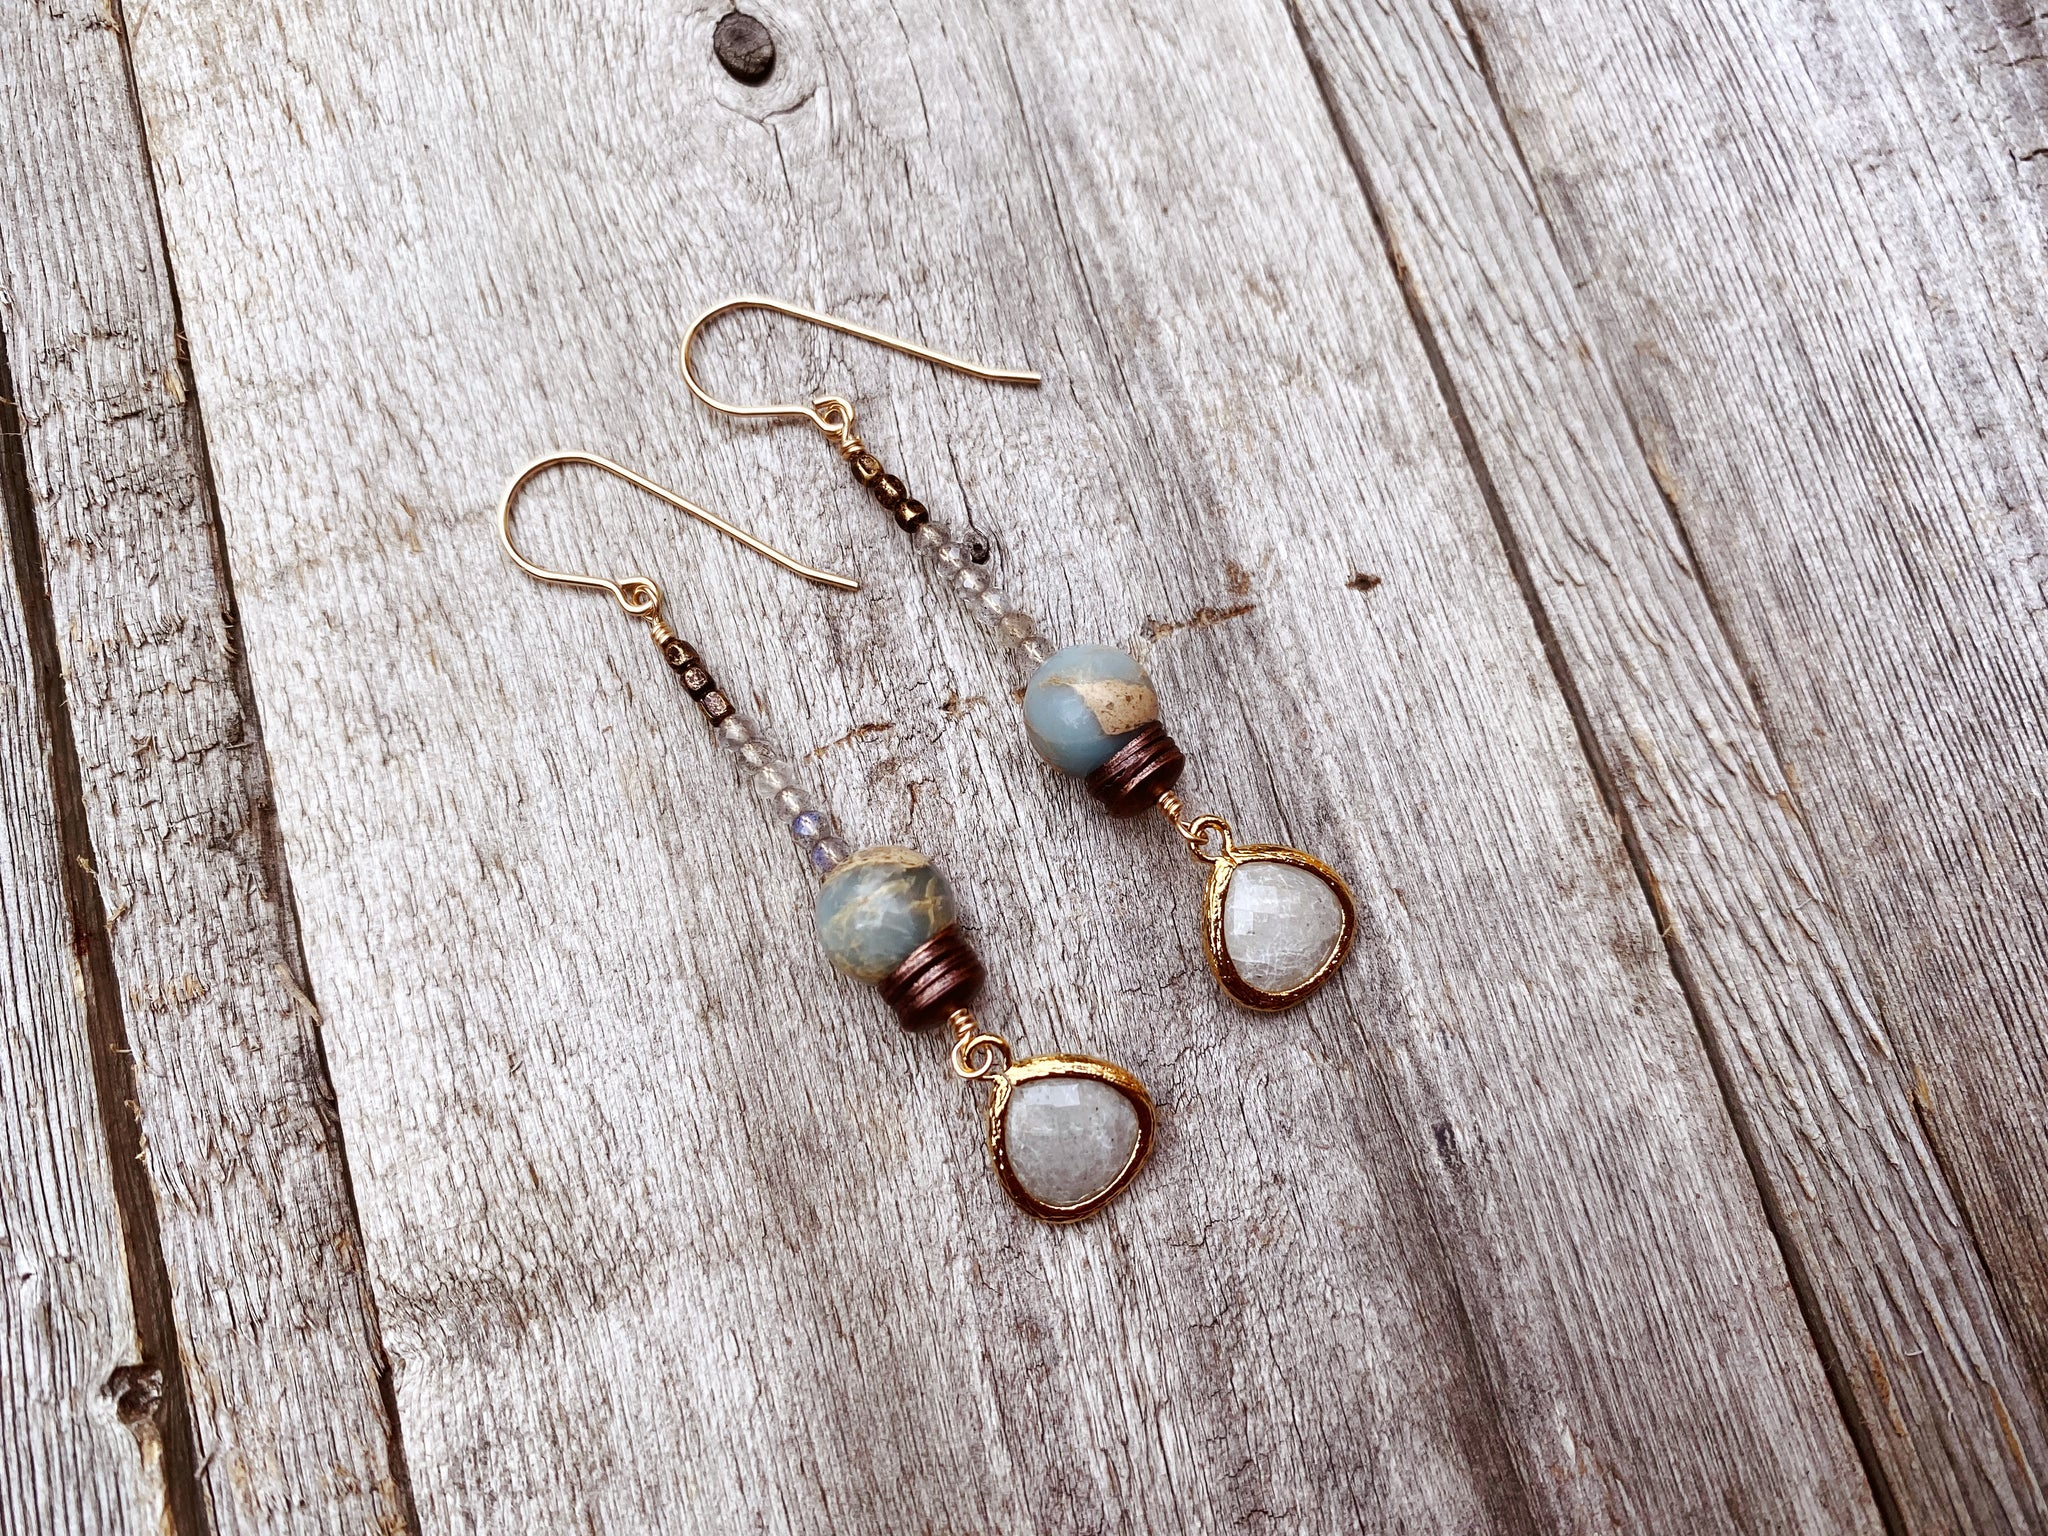 Sea Sediment and Labradorite Earrings